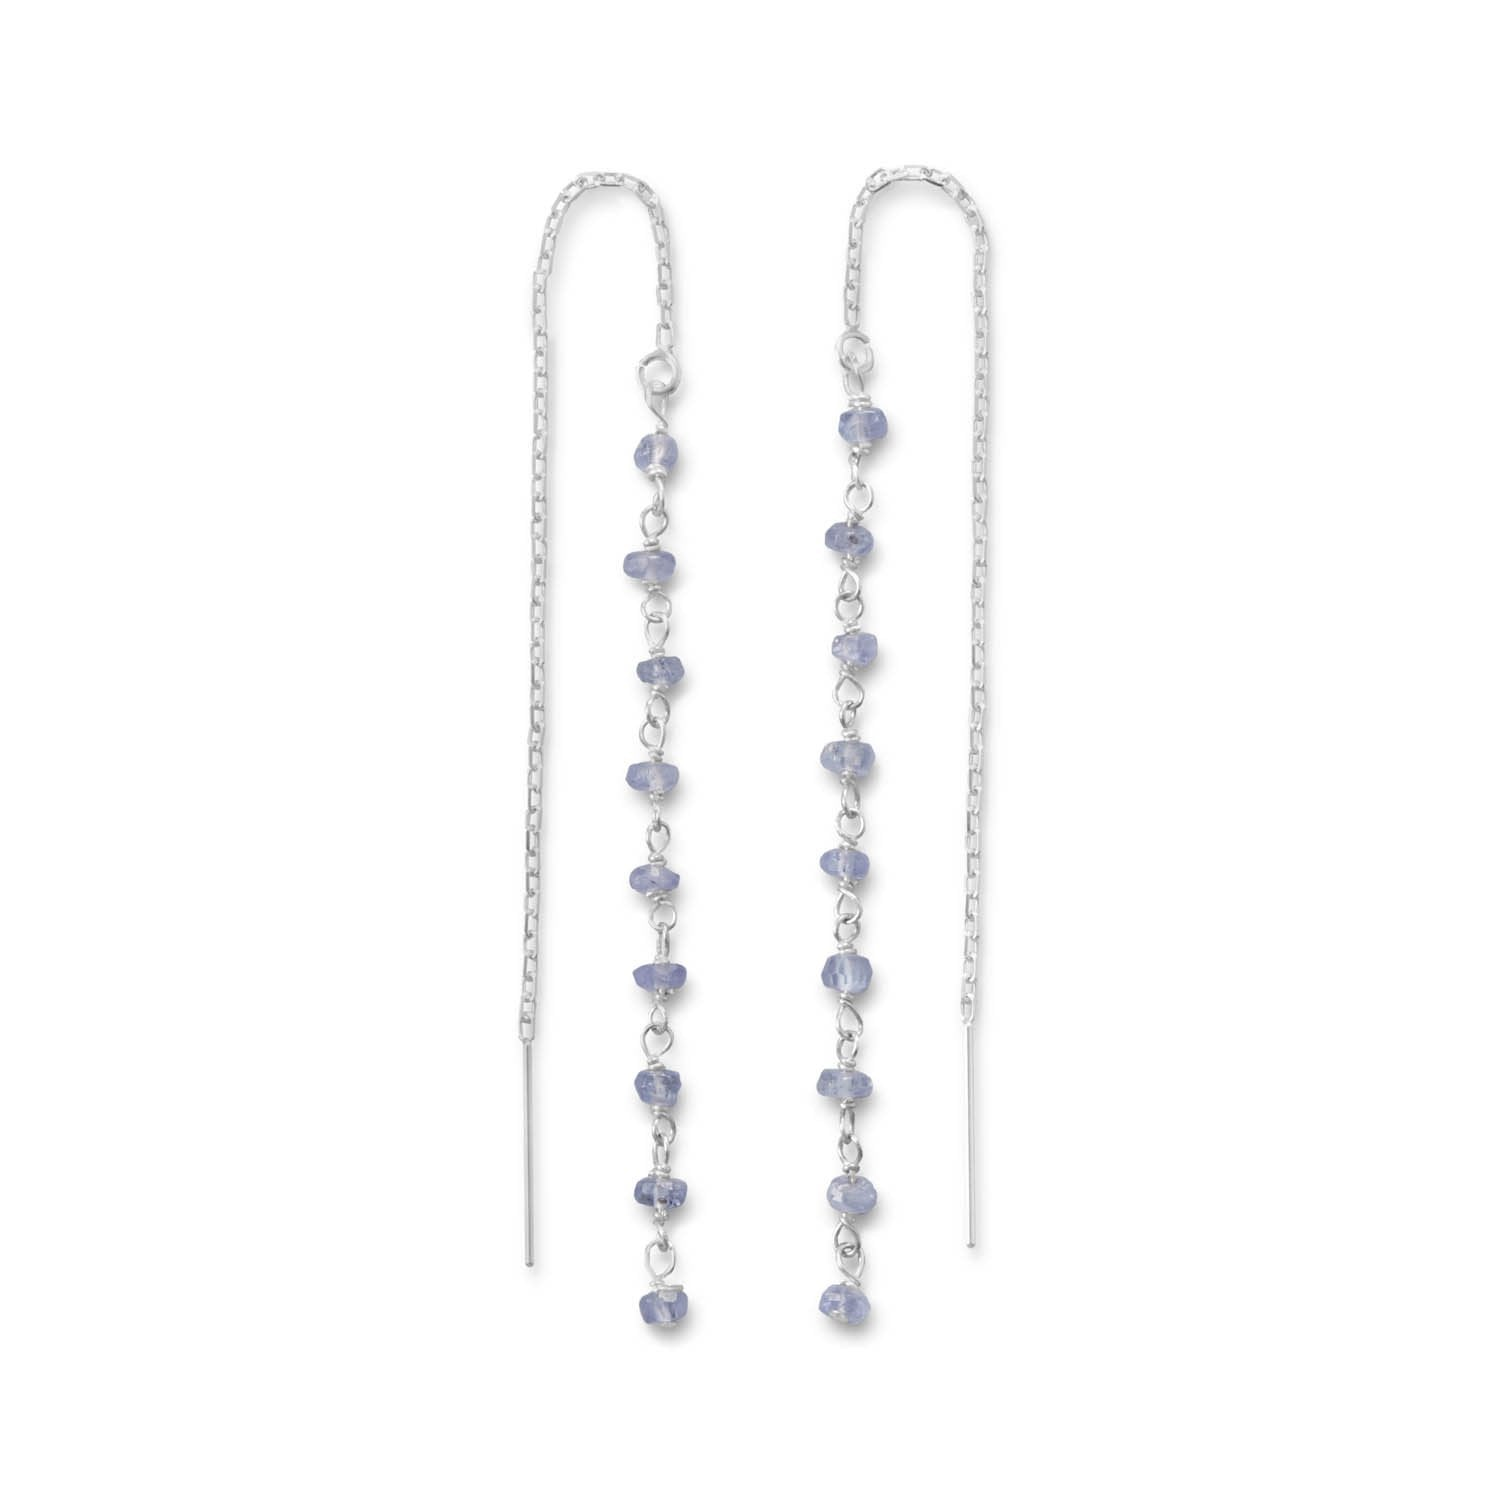 Genuine 925 Sterling Silver Tanzanite Bead Threader Earrings - Rocky Mt. Outlet Inc - Shop & Save 24/7